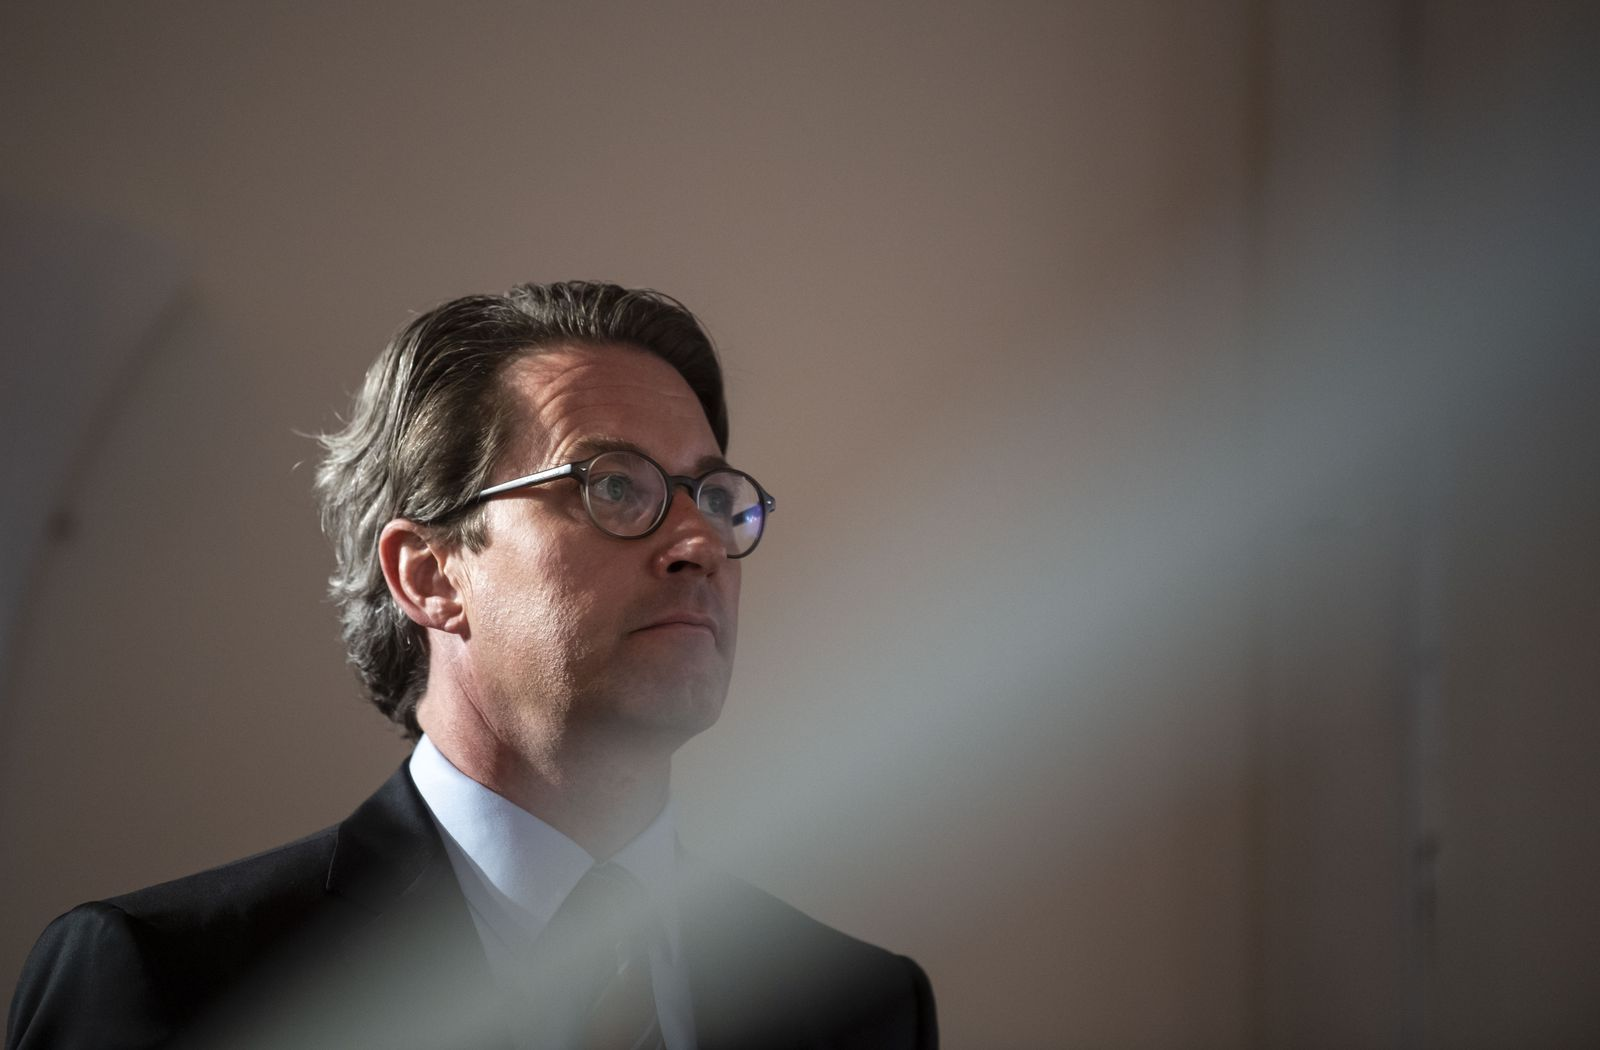 German Transport Minister presents plans for new ICE plant, Nuremberg, Germany - 05 Oct 2020